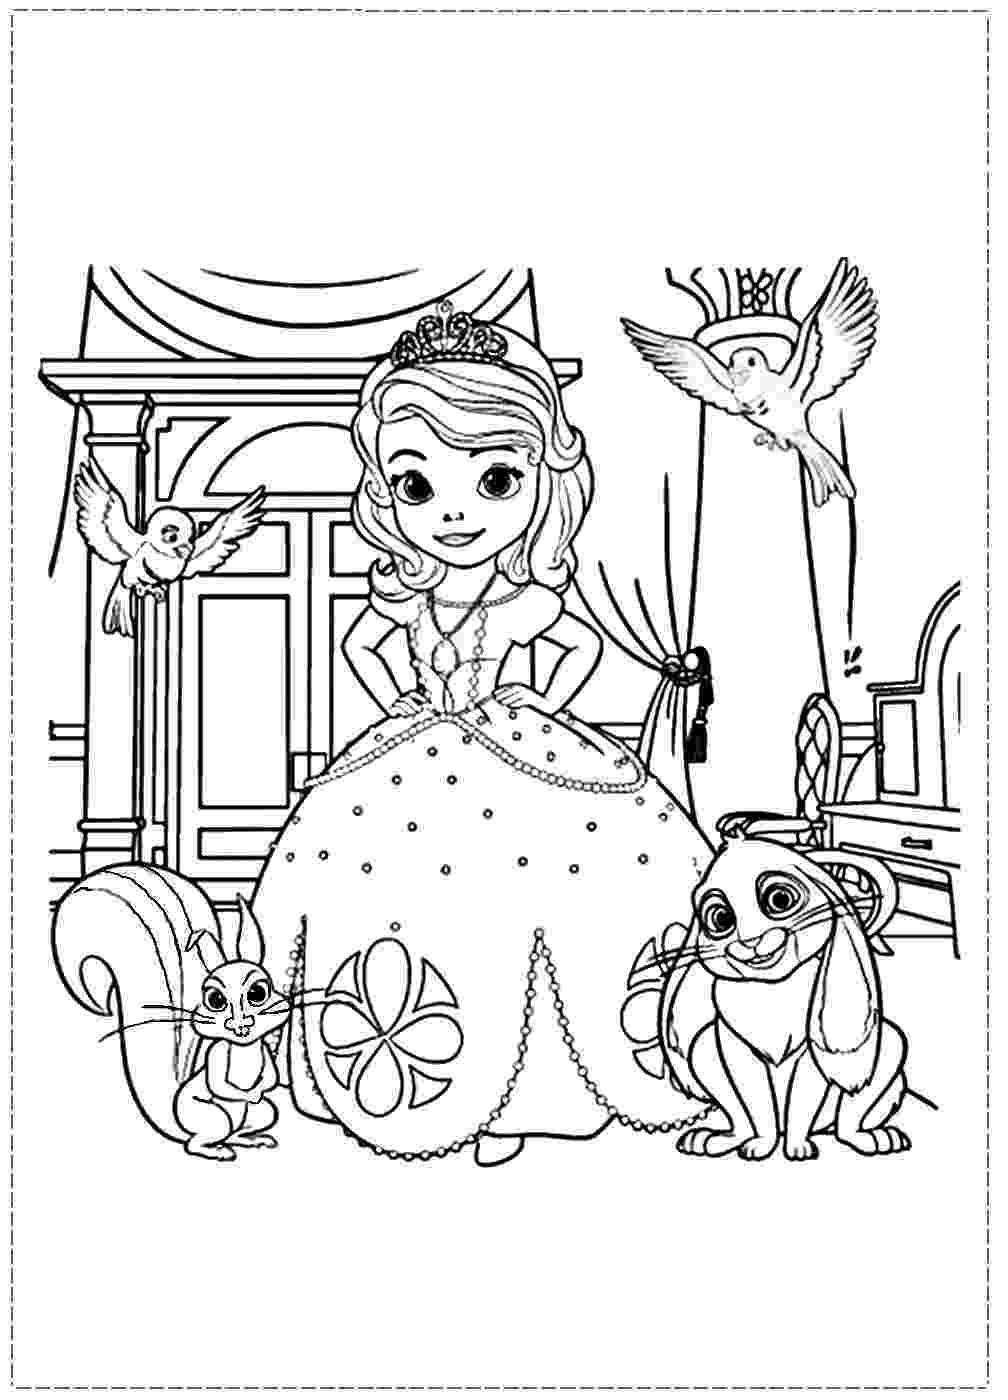 pictures to color printable my little pony coloring pages color pictures to printable